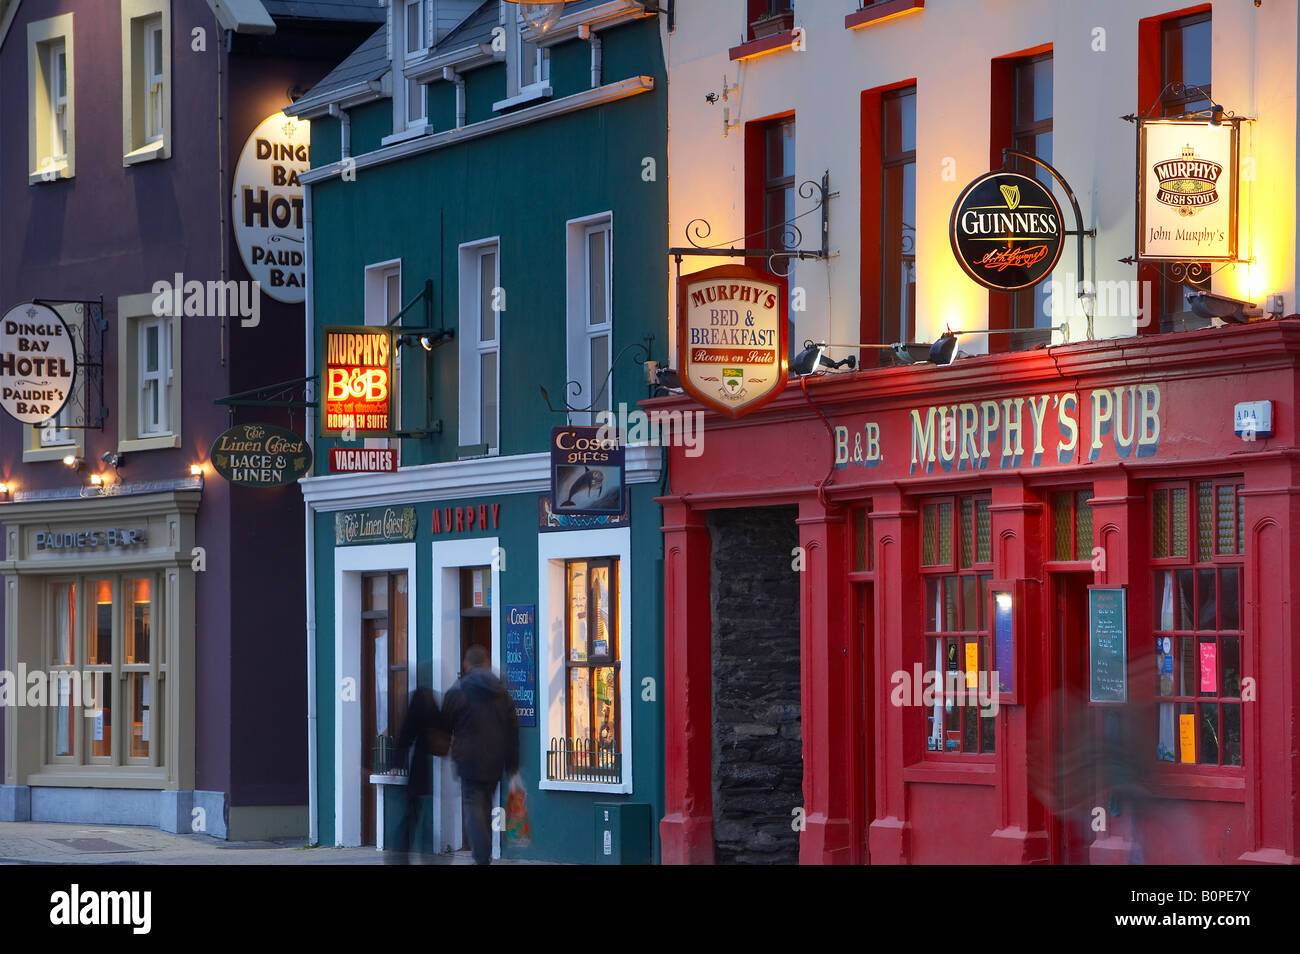 pubs on the main street in Dingle, County Kerry, Ireland - Stock Image